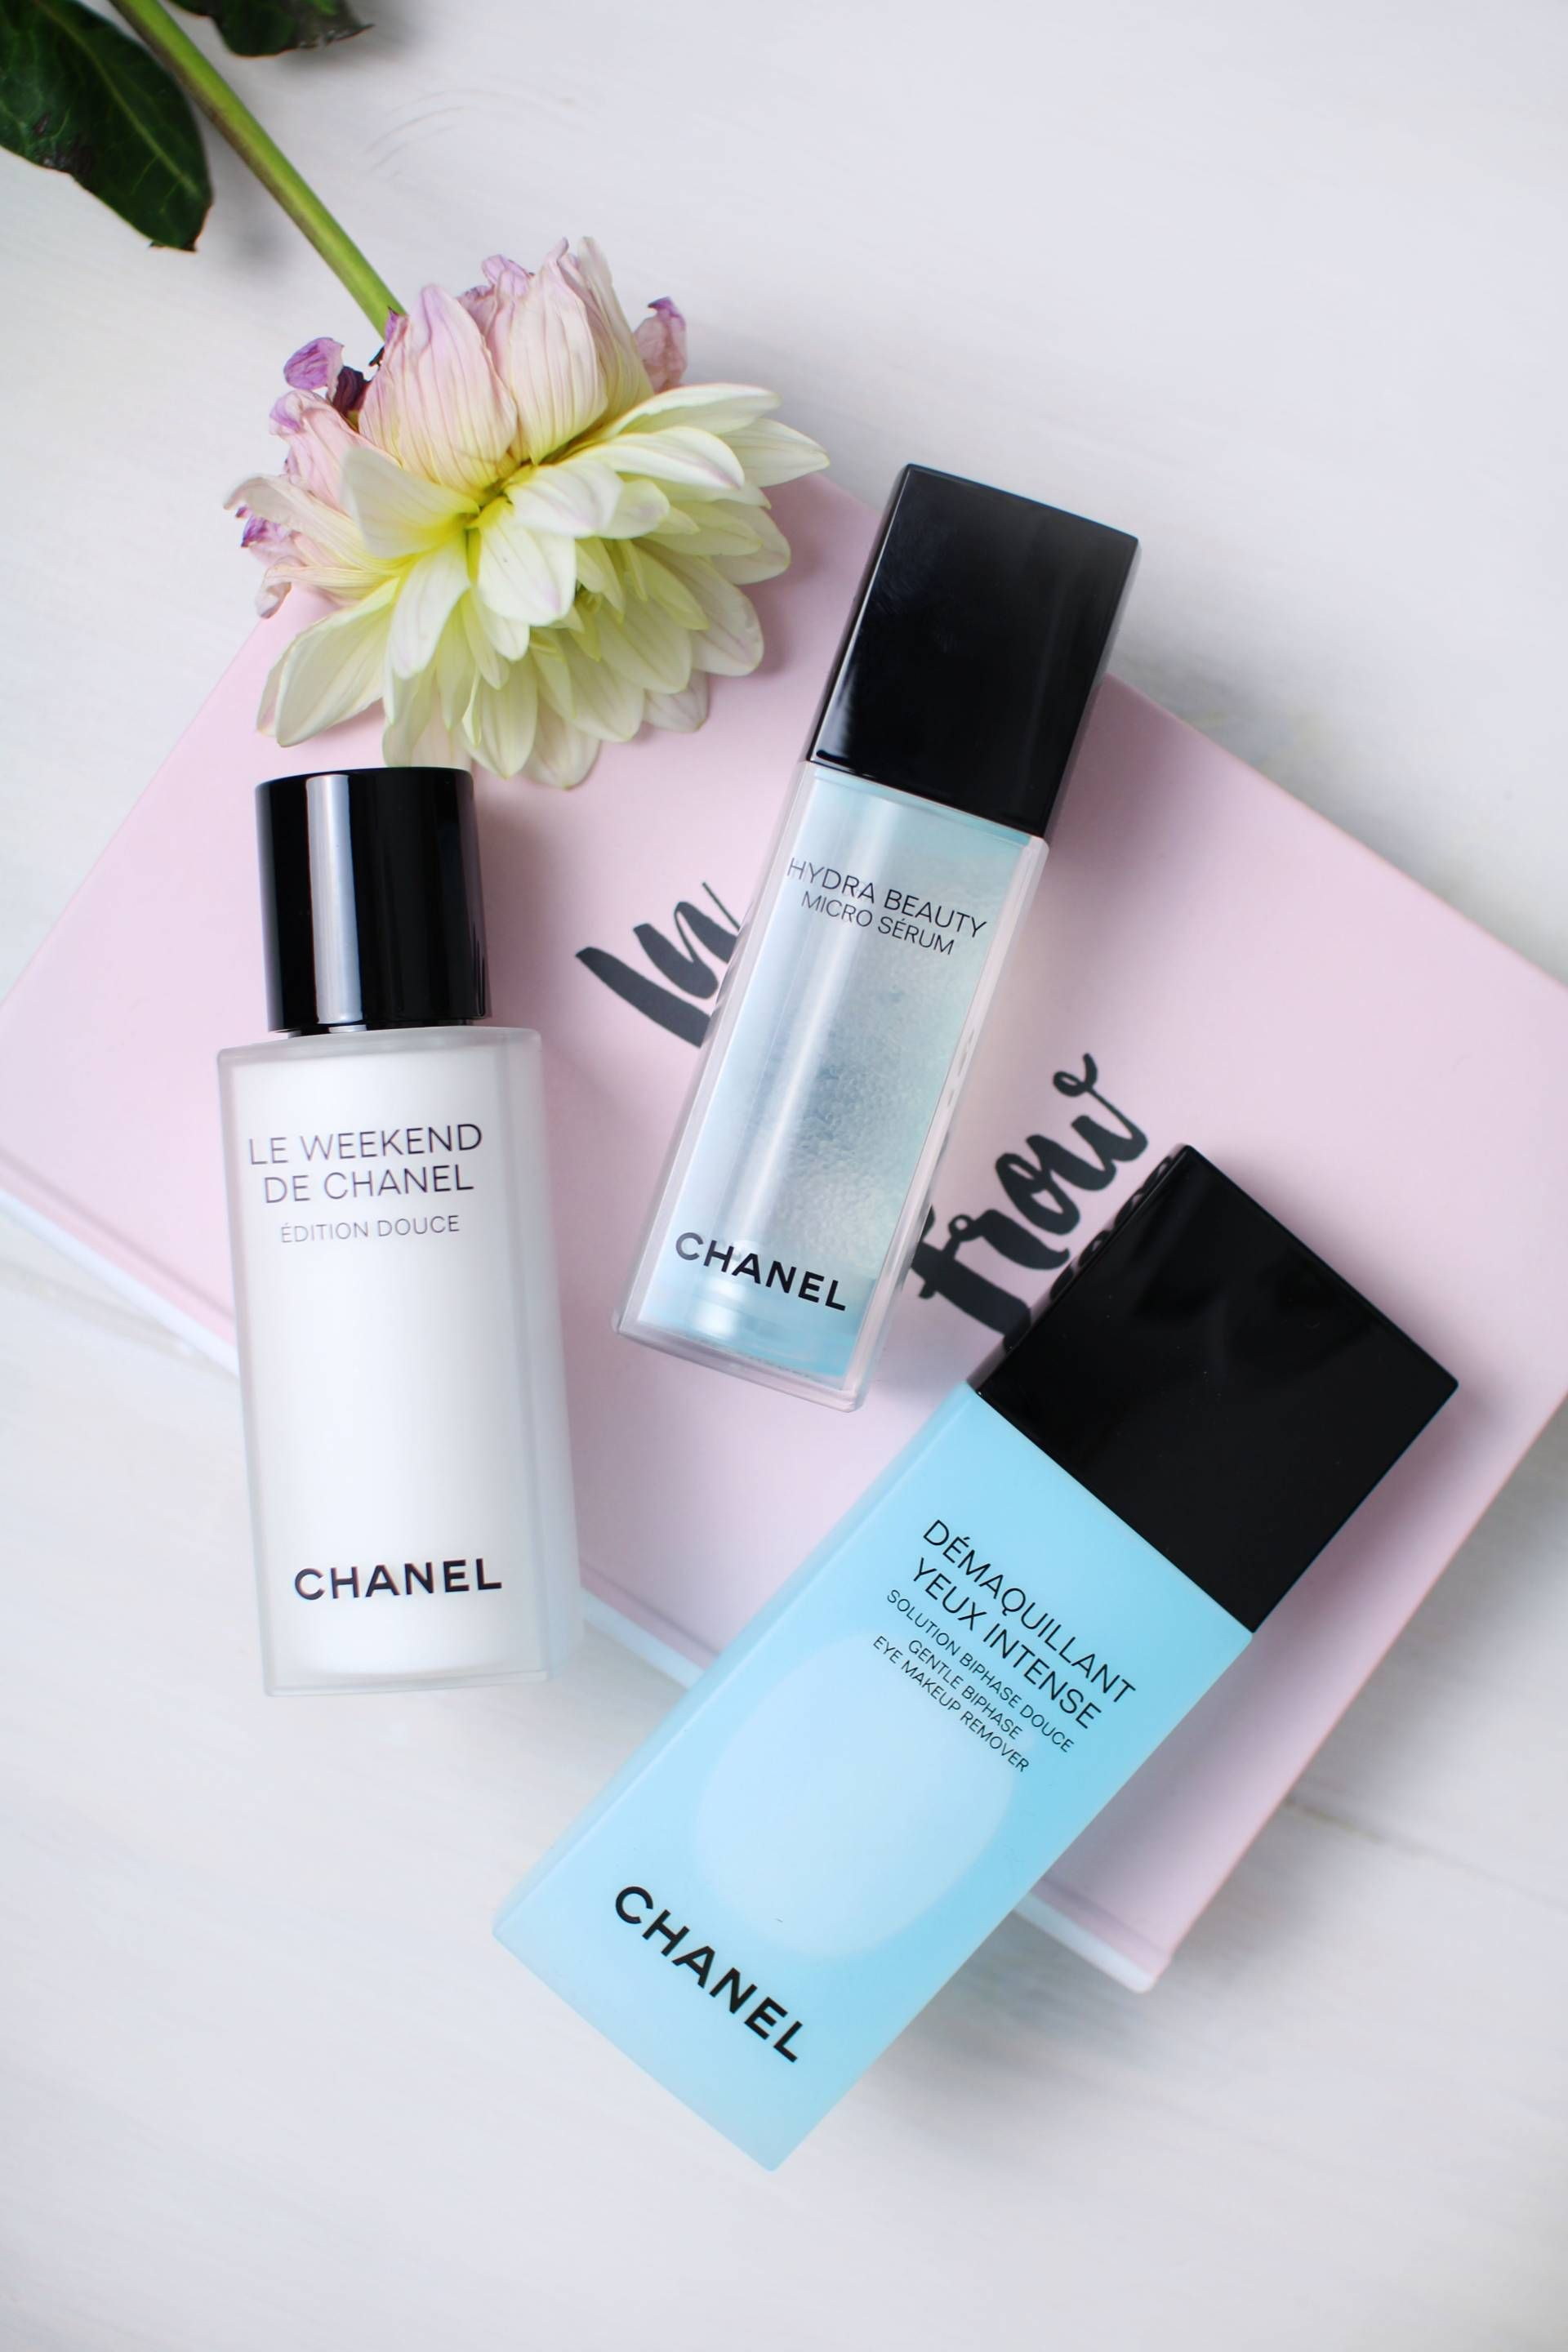 Chanel Skincare for the Weekend Chanel eye makeup